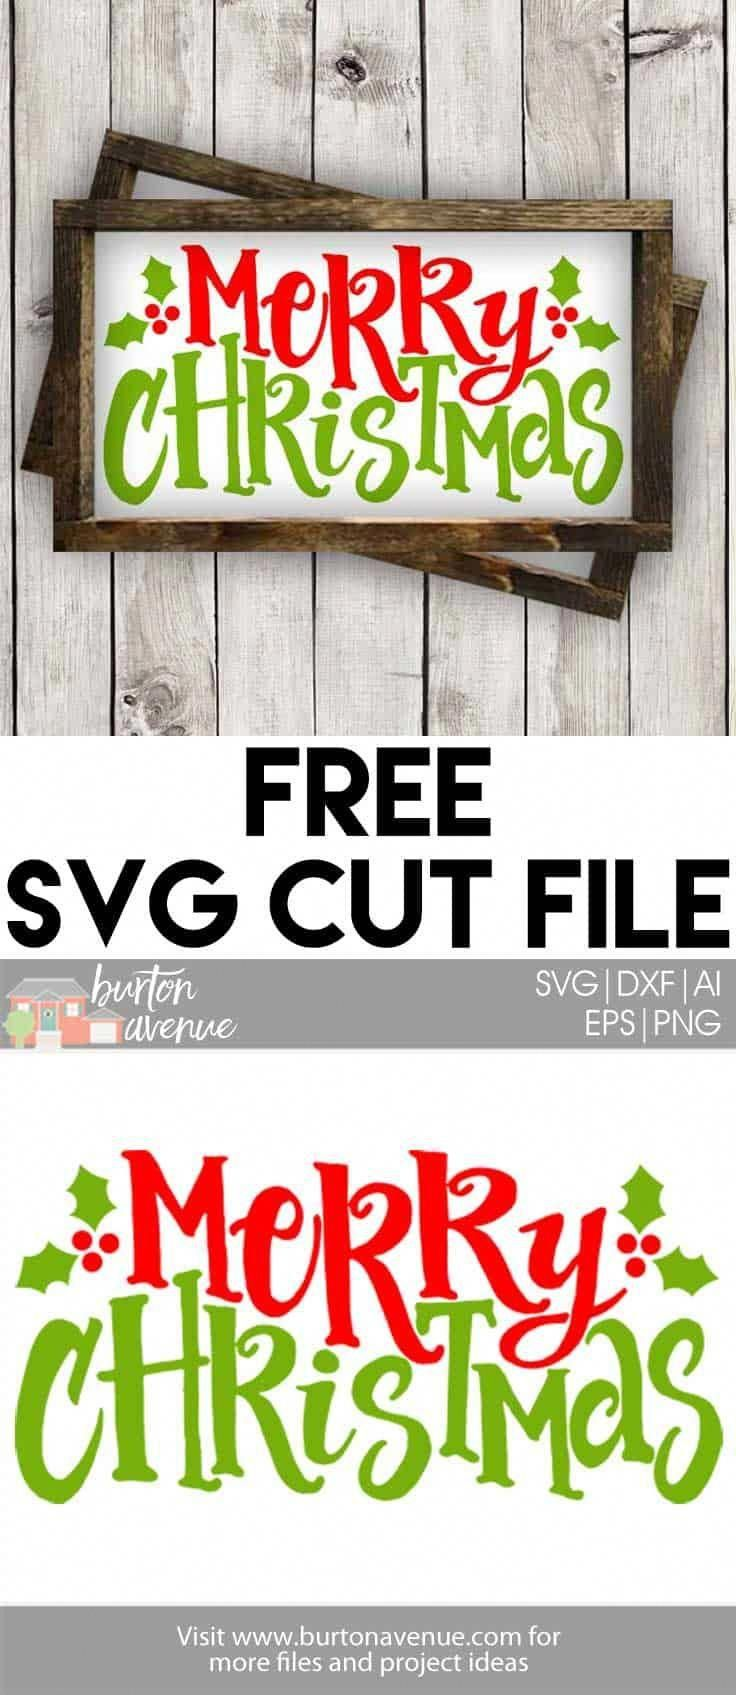 Download Free Christmas SVG Files for Silhouette and Cricut ...